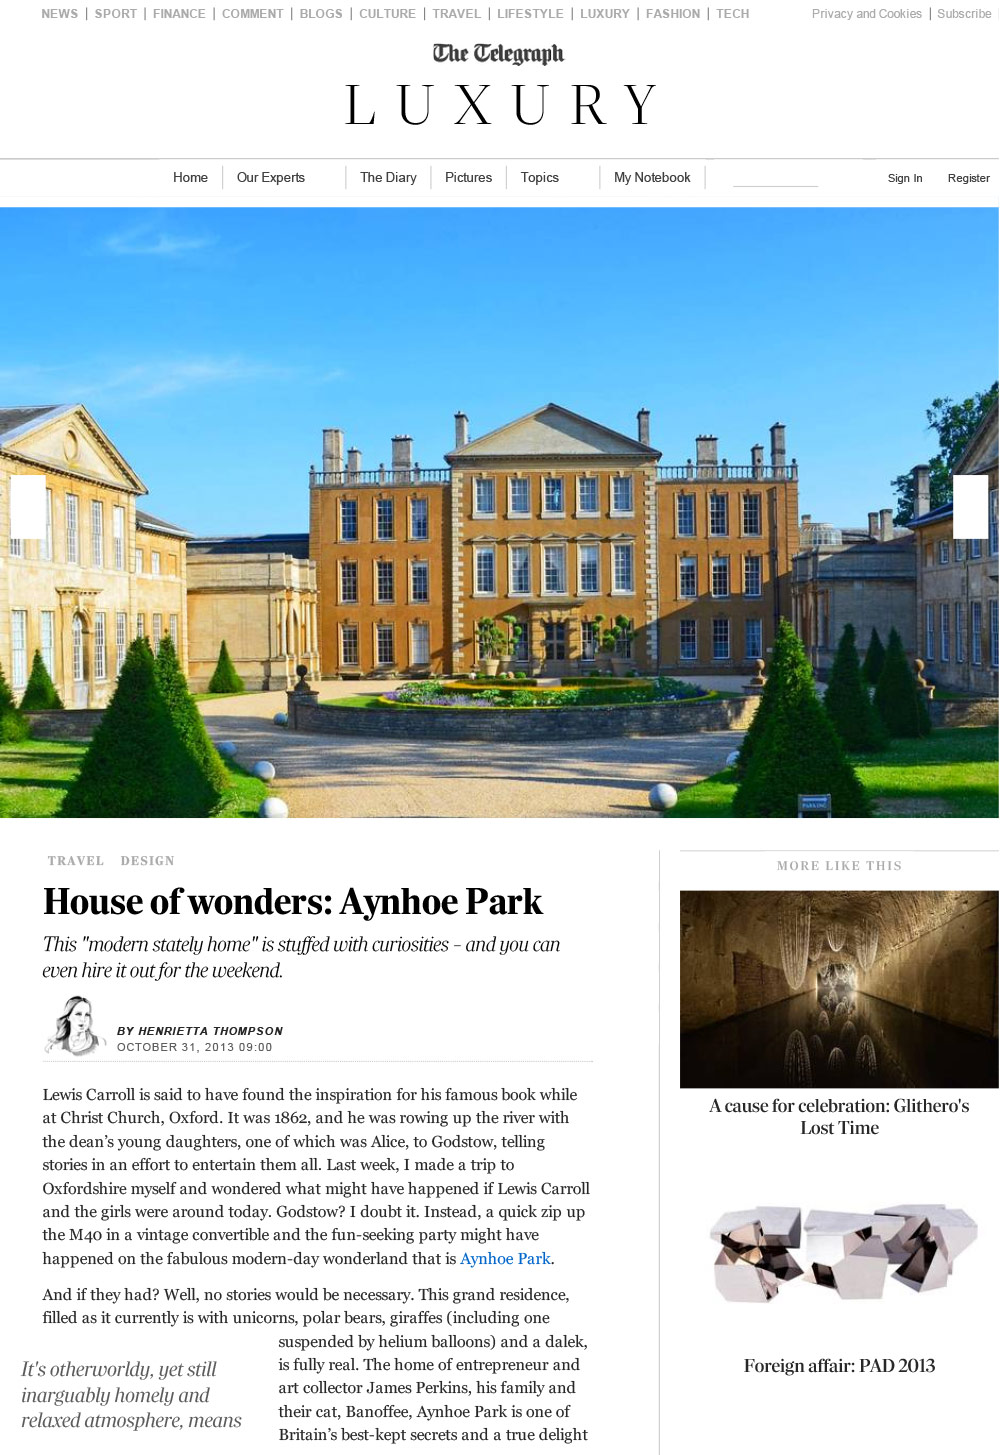 Aynhoe Park in The Telegraph